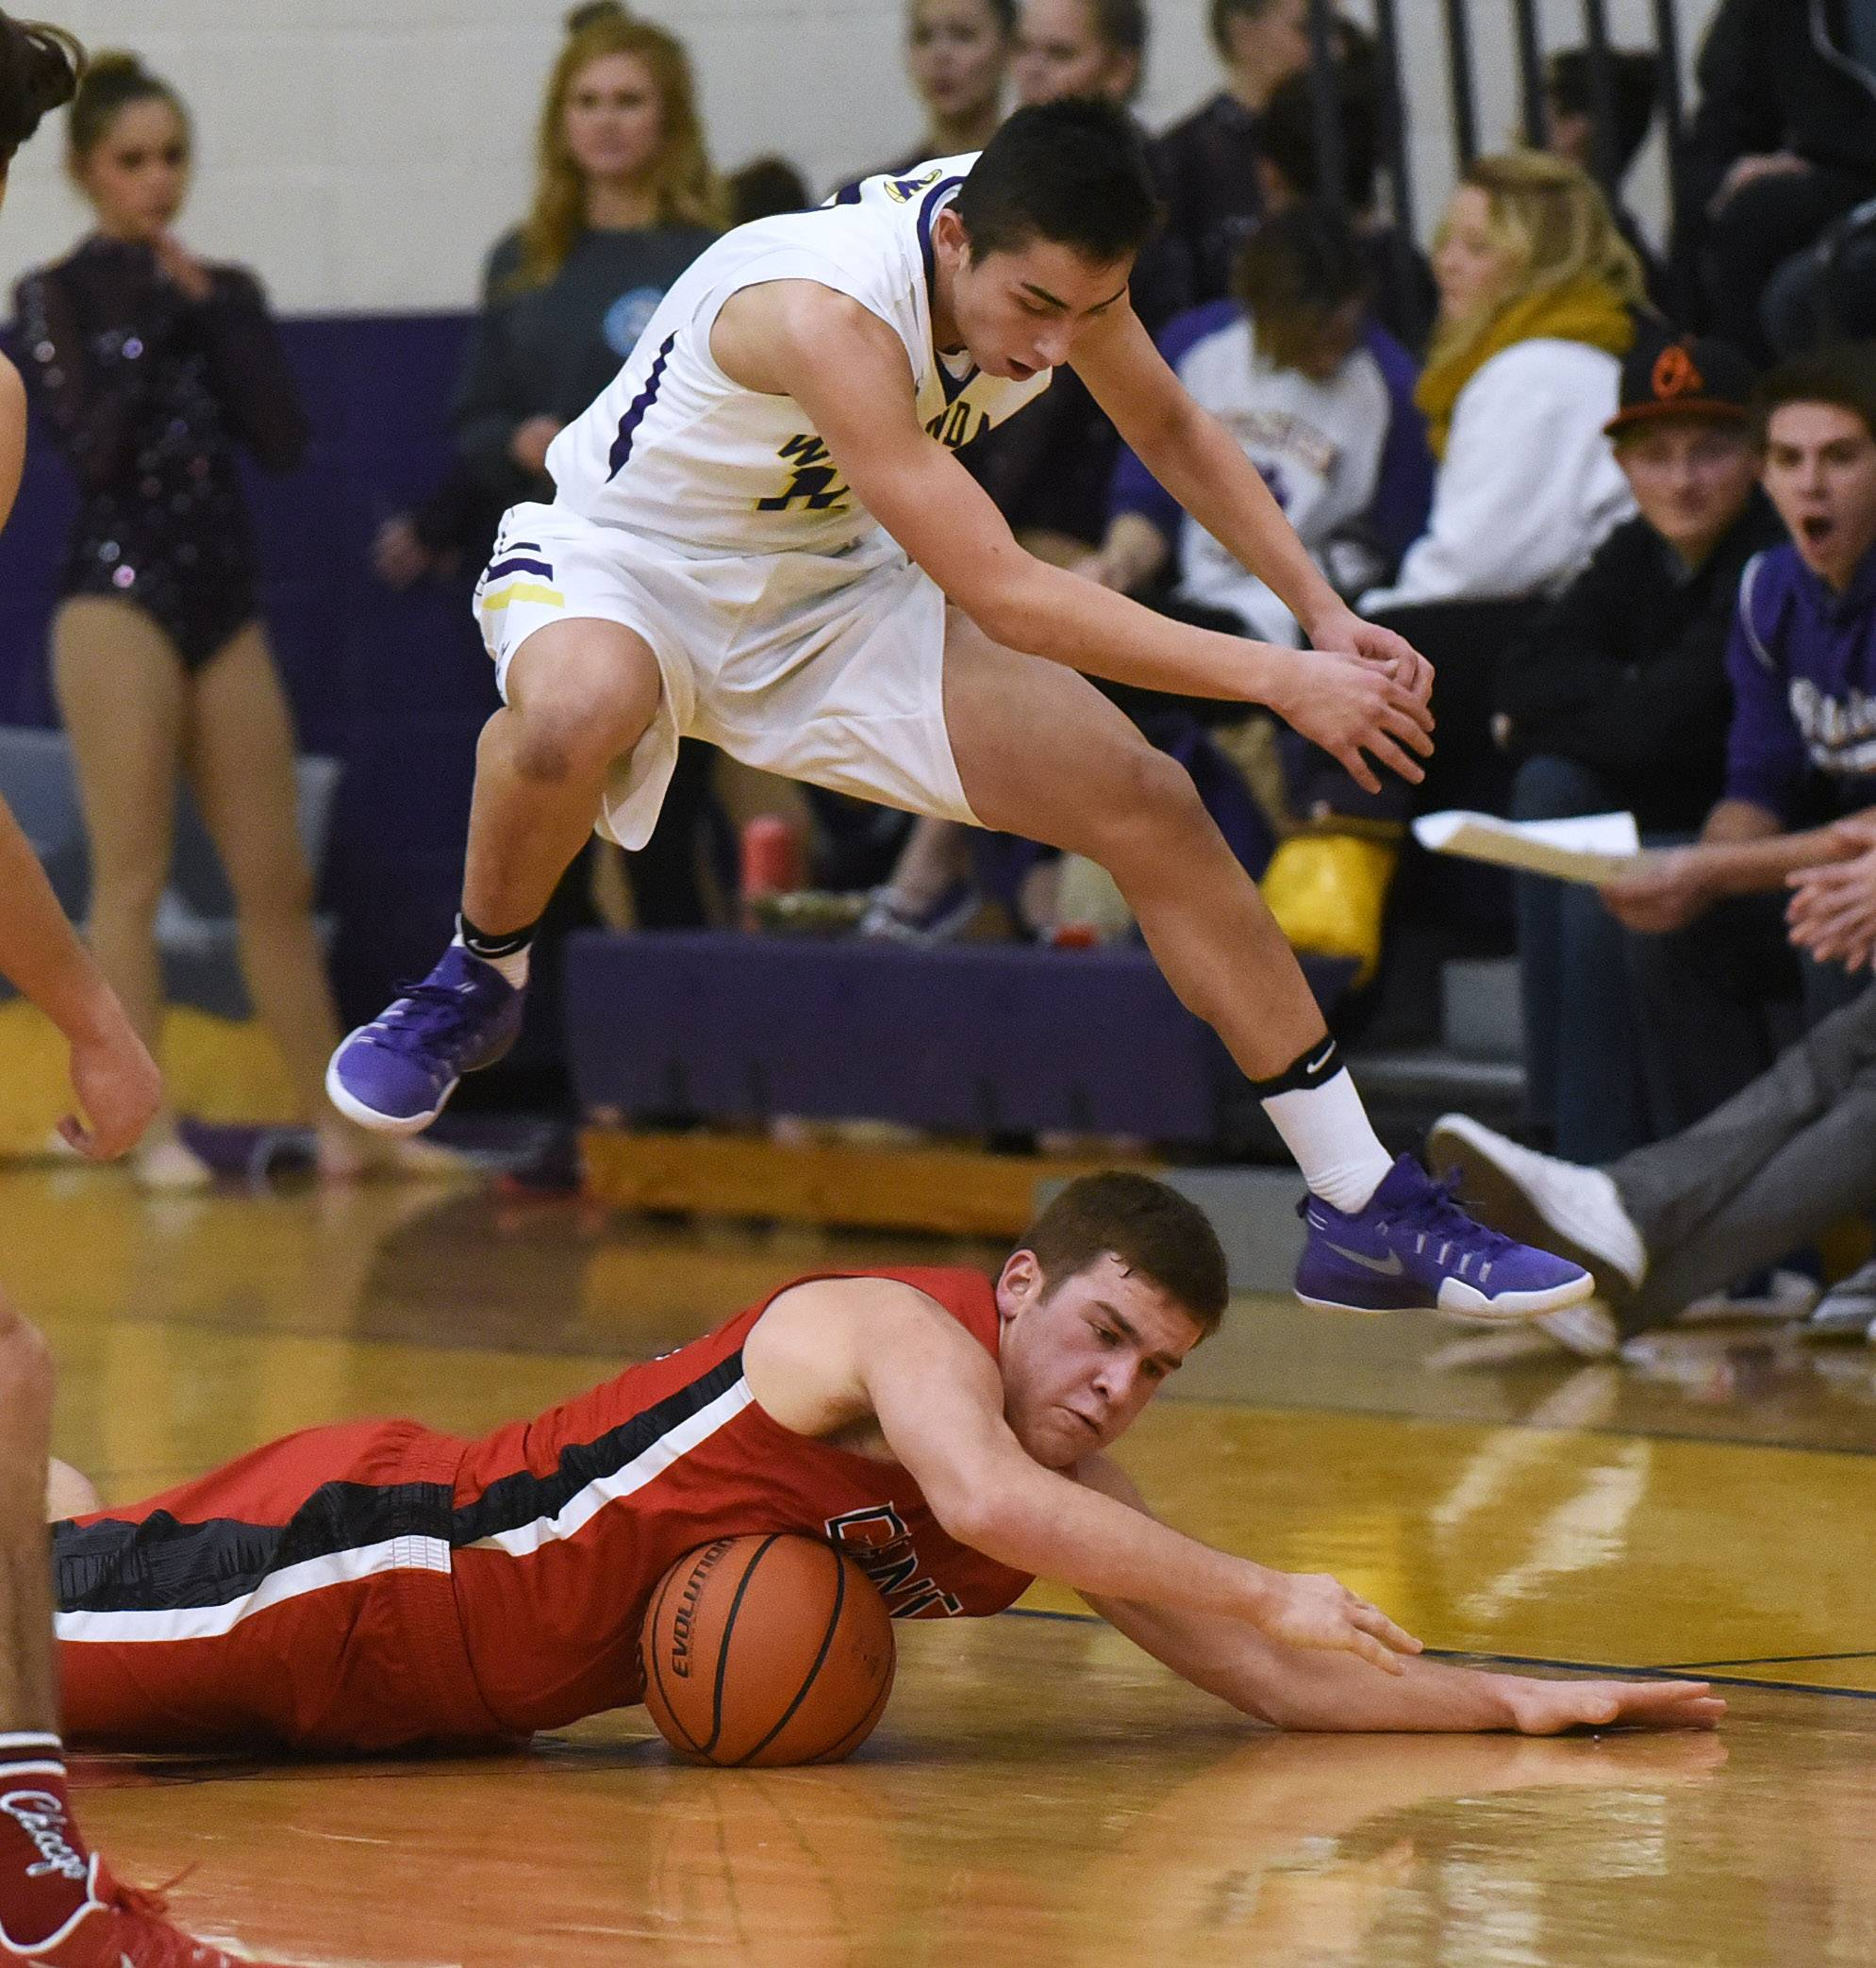 Wauconda's Connor Brannick (top) avoids a collision with Grant's Ben Kusiak as he dives on a loose ball during Tuesday's game in Wauconda.